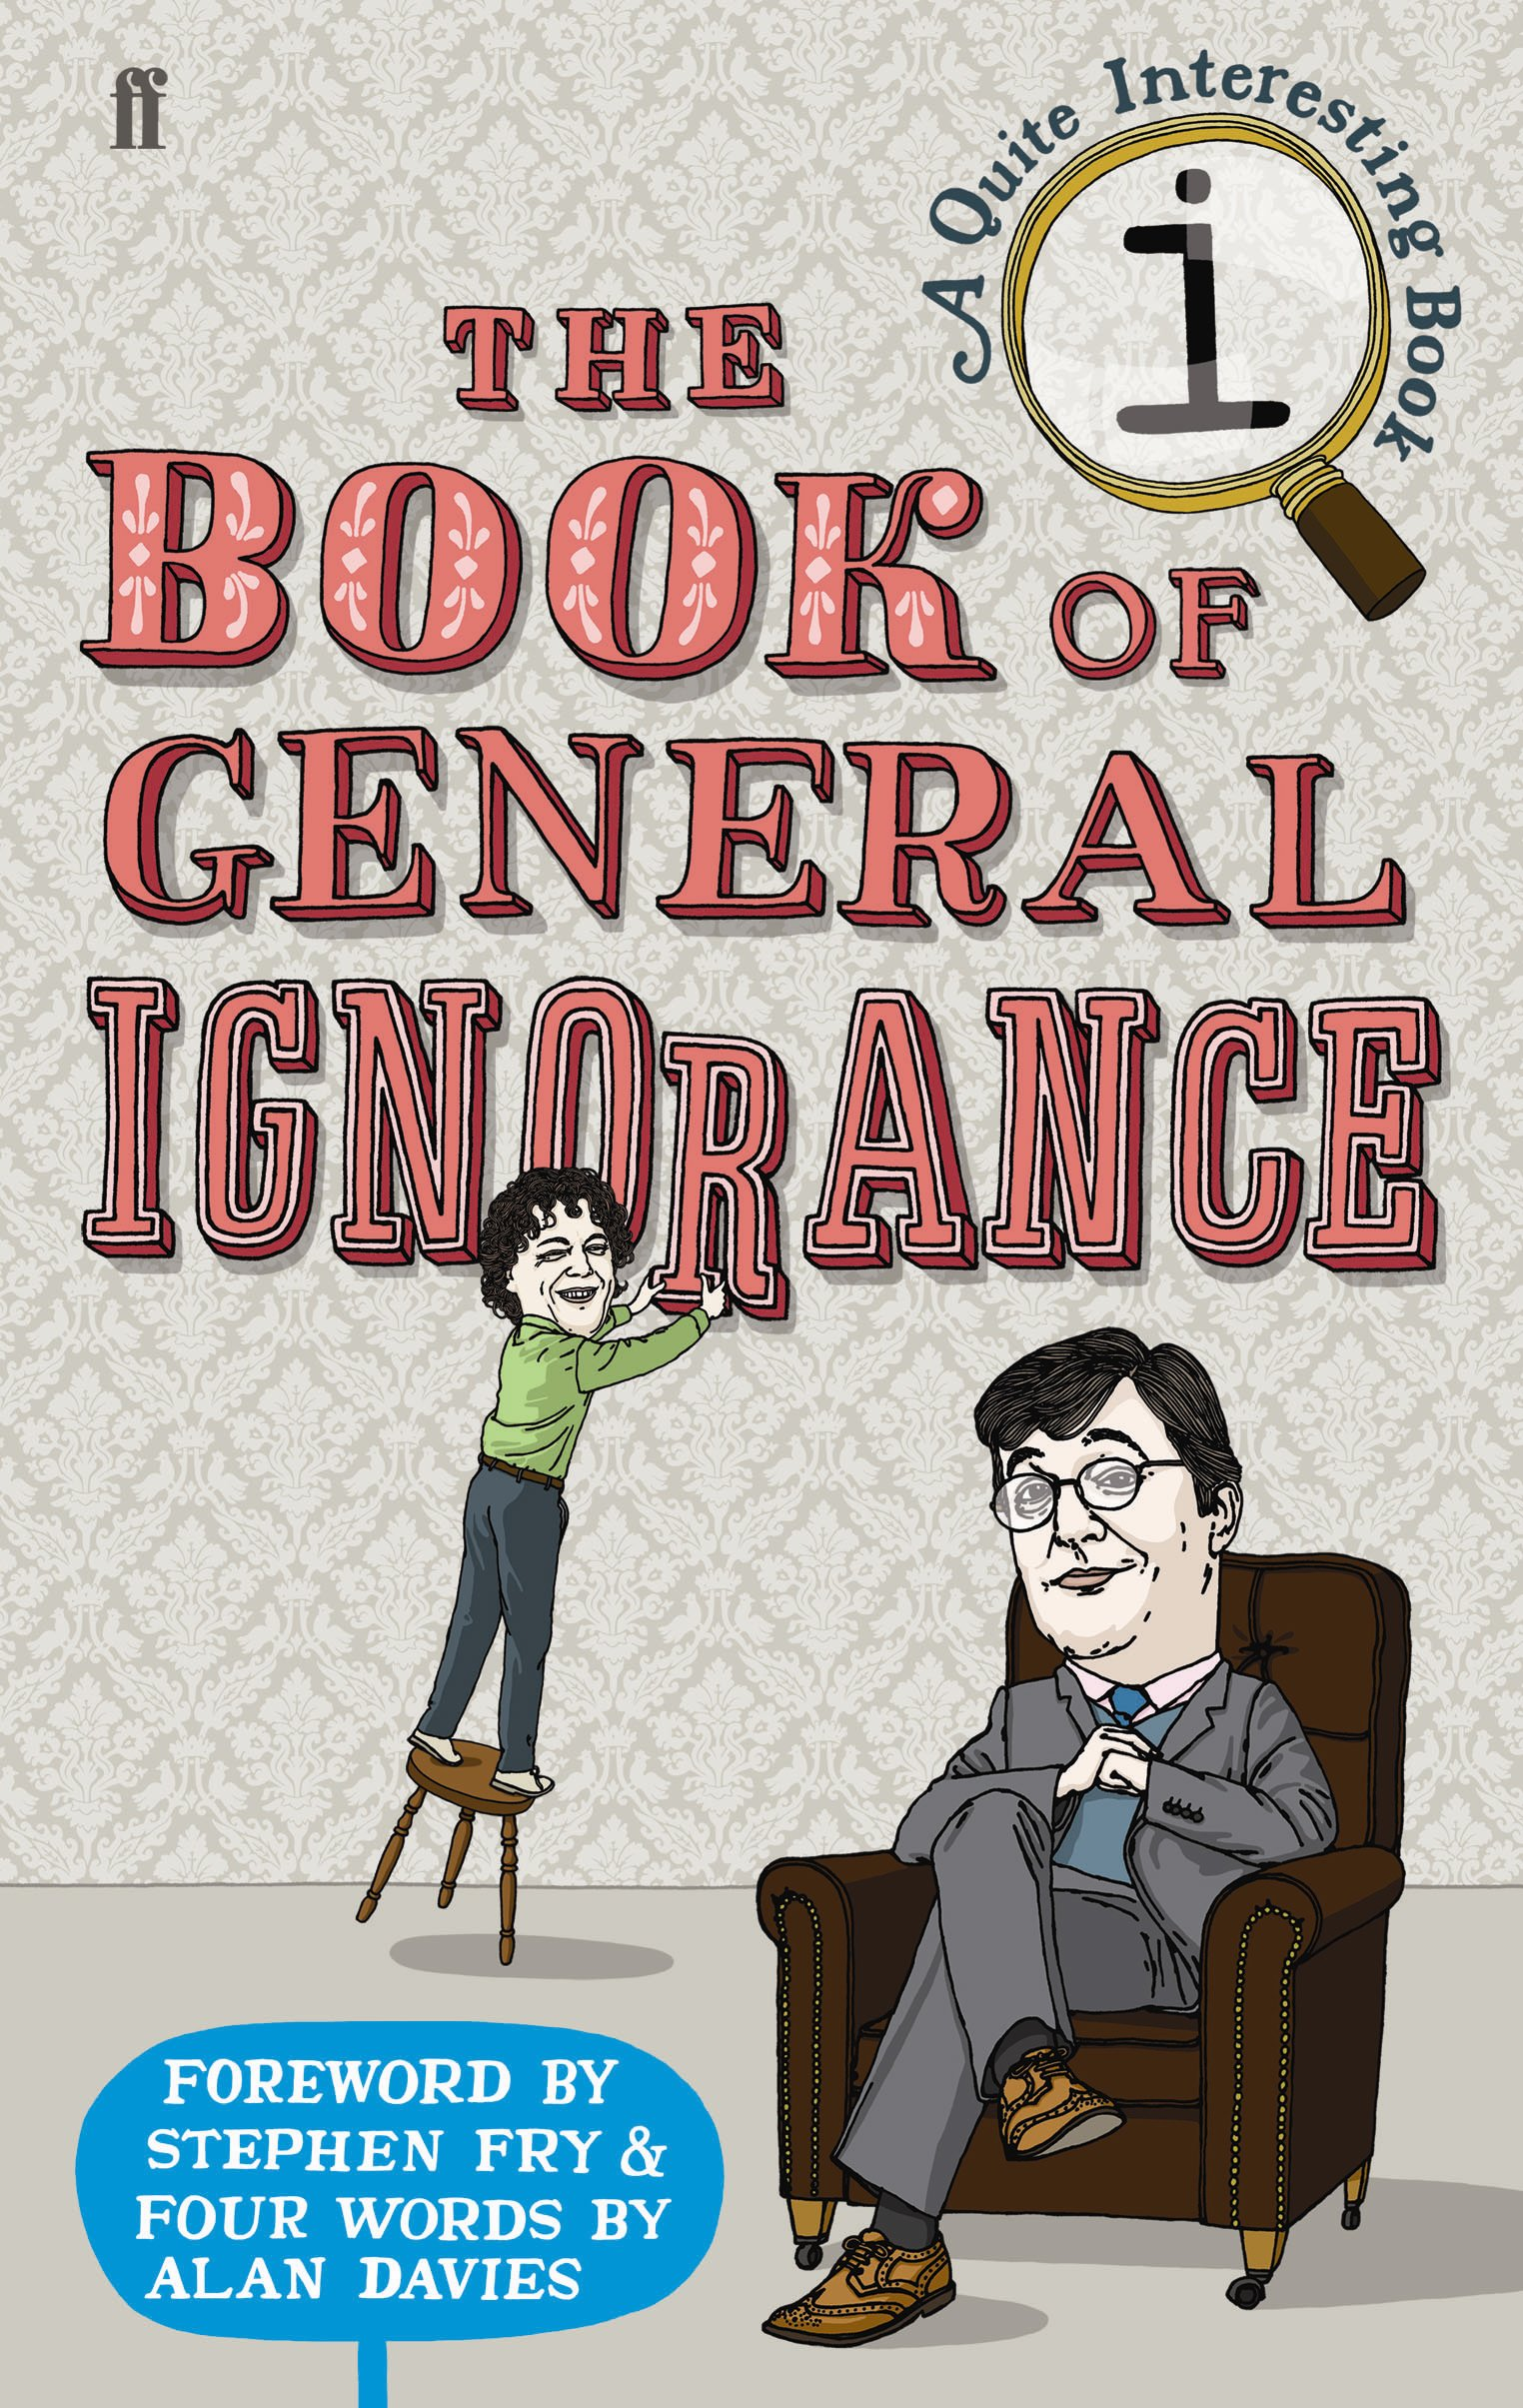 The Book of General Ignorance (A Quite Interesting Book): Amazon.co.uk:  John Lloyd, John Mitchinson, Stephen Fry: 9780571233687: Books